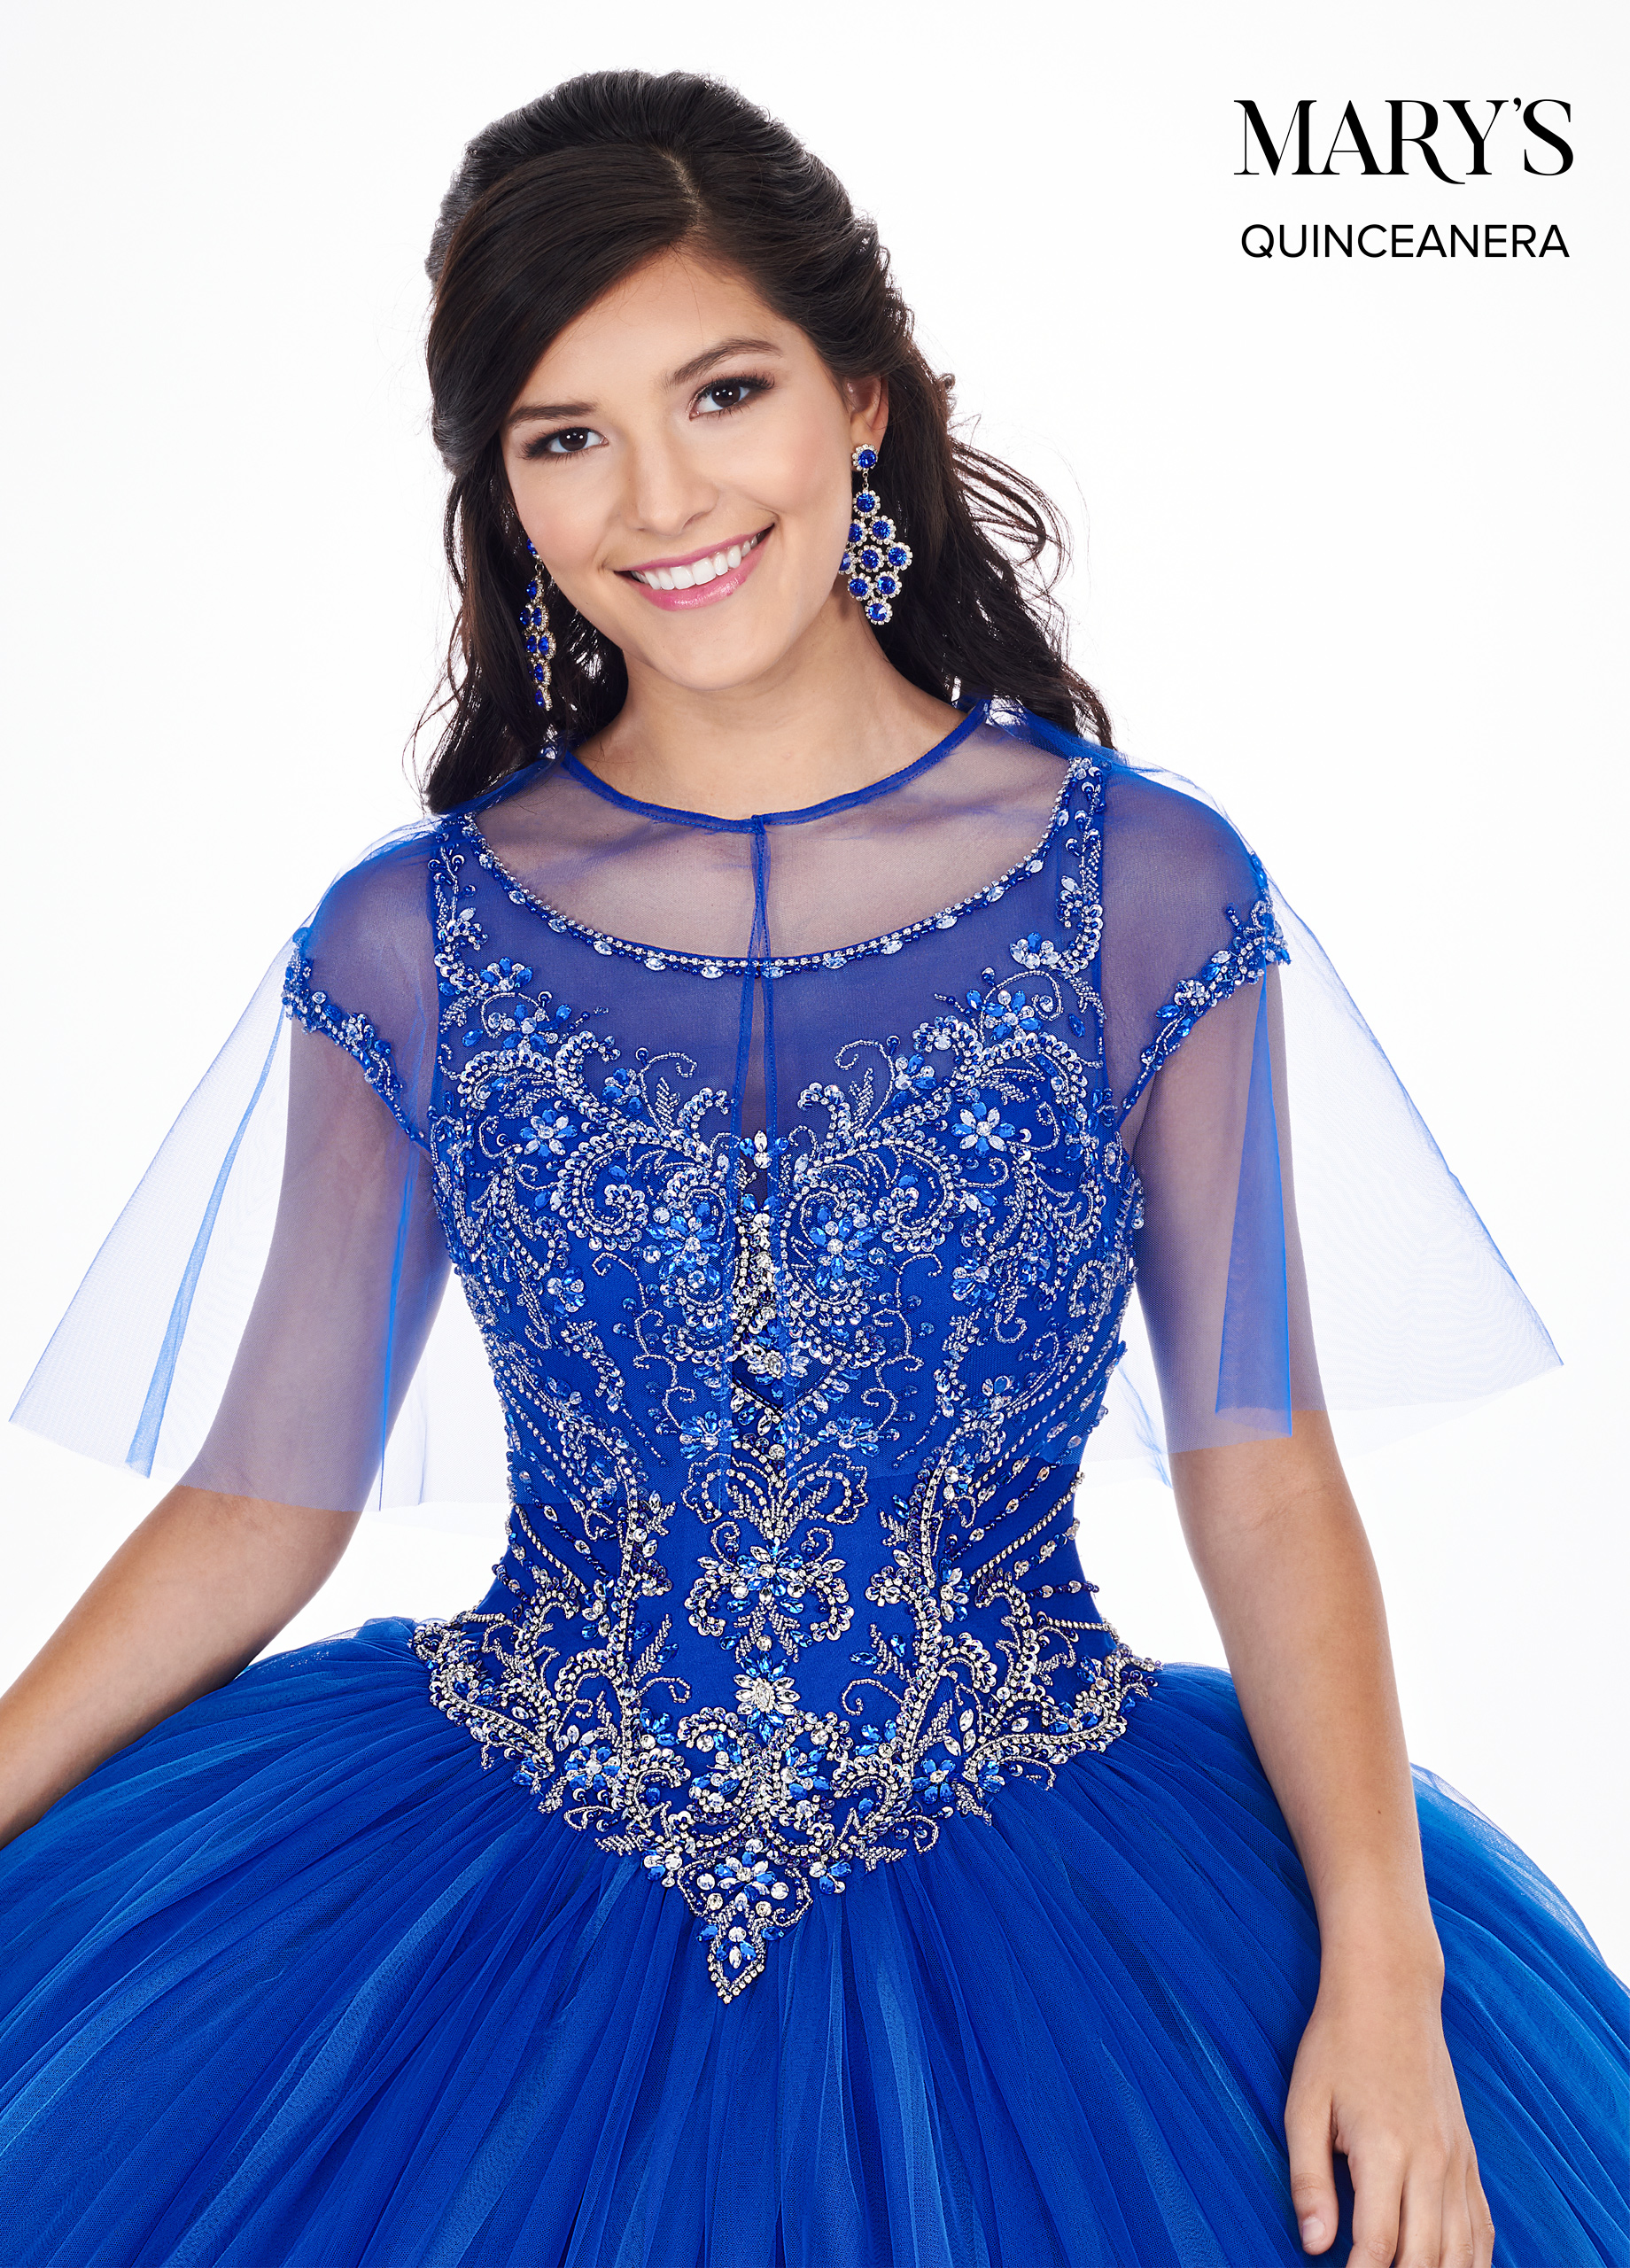 Marys Quinceanera Dresses | Mary's Quinceanera | Style - MQ2062